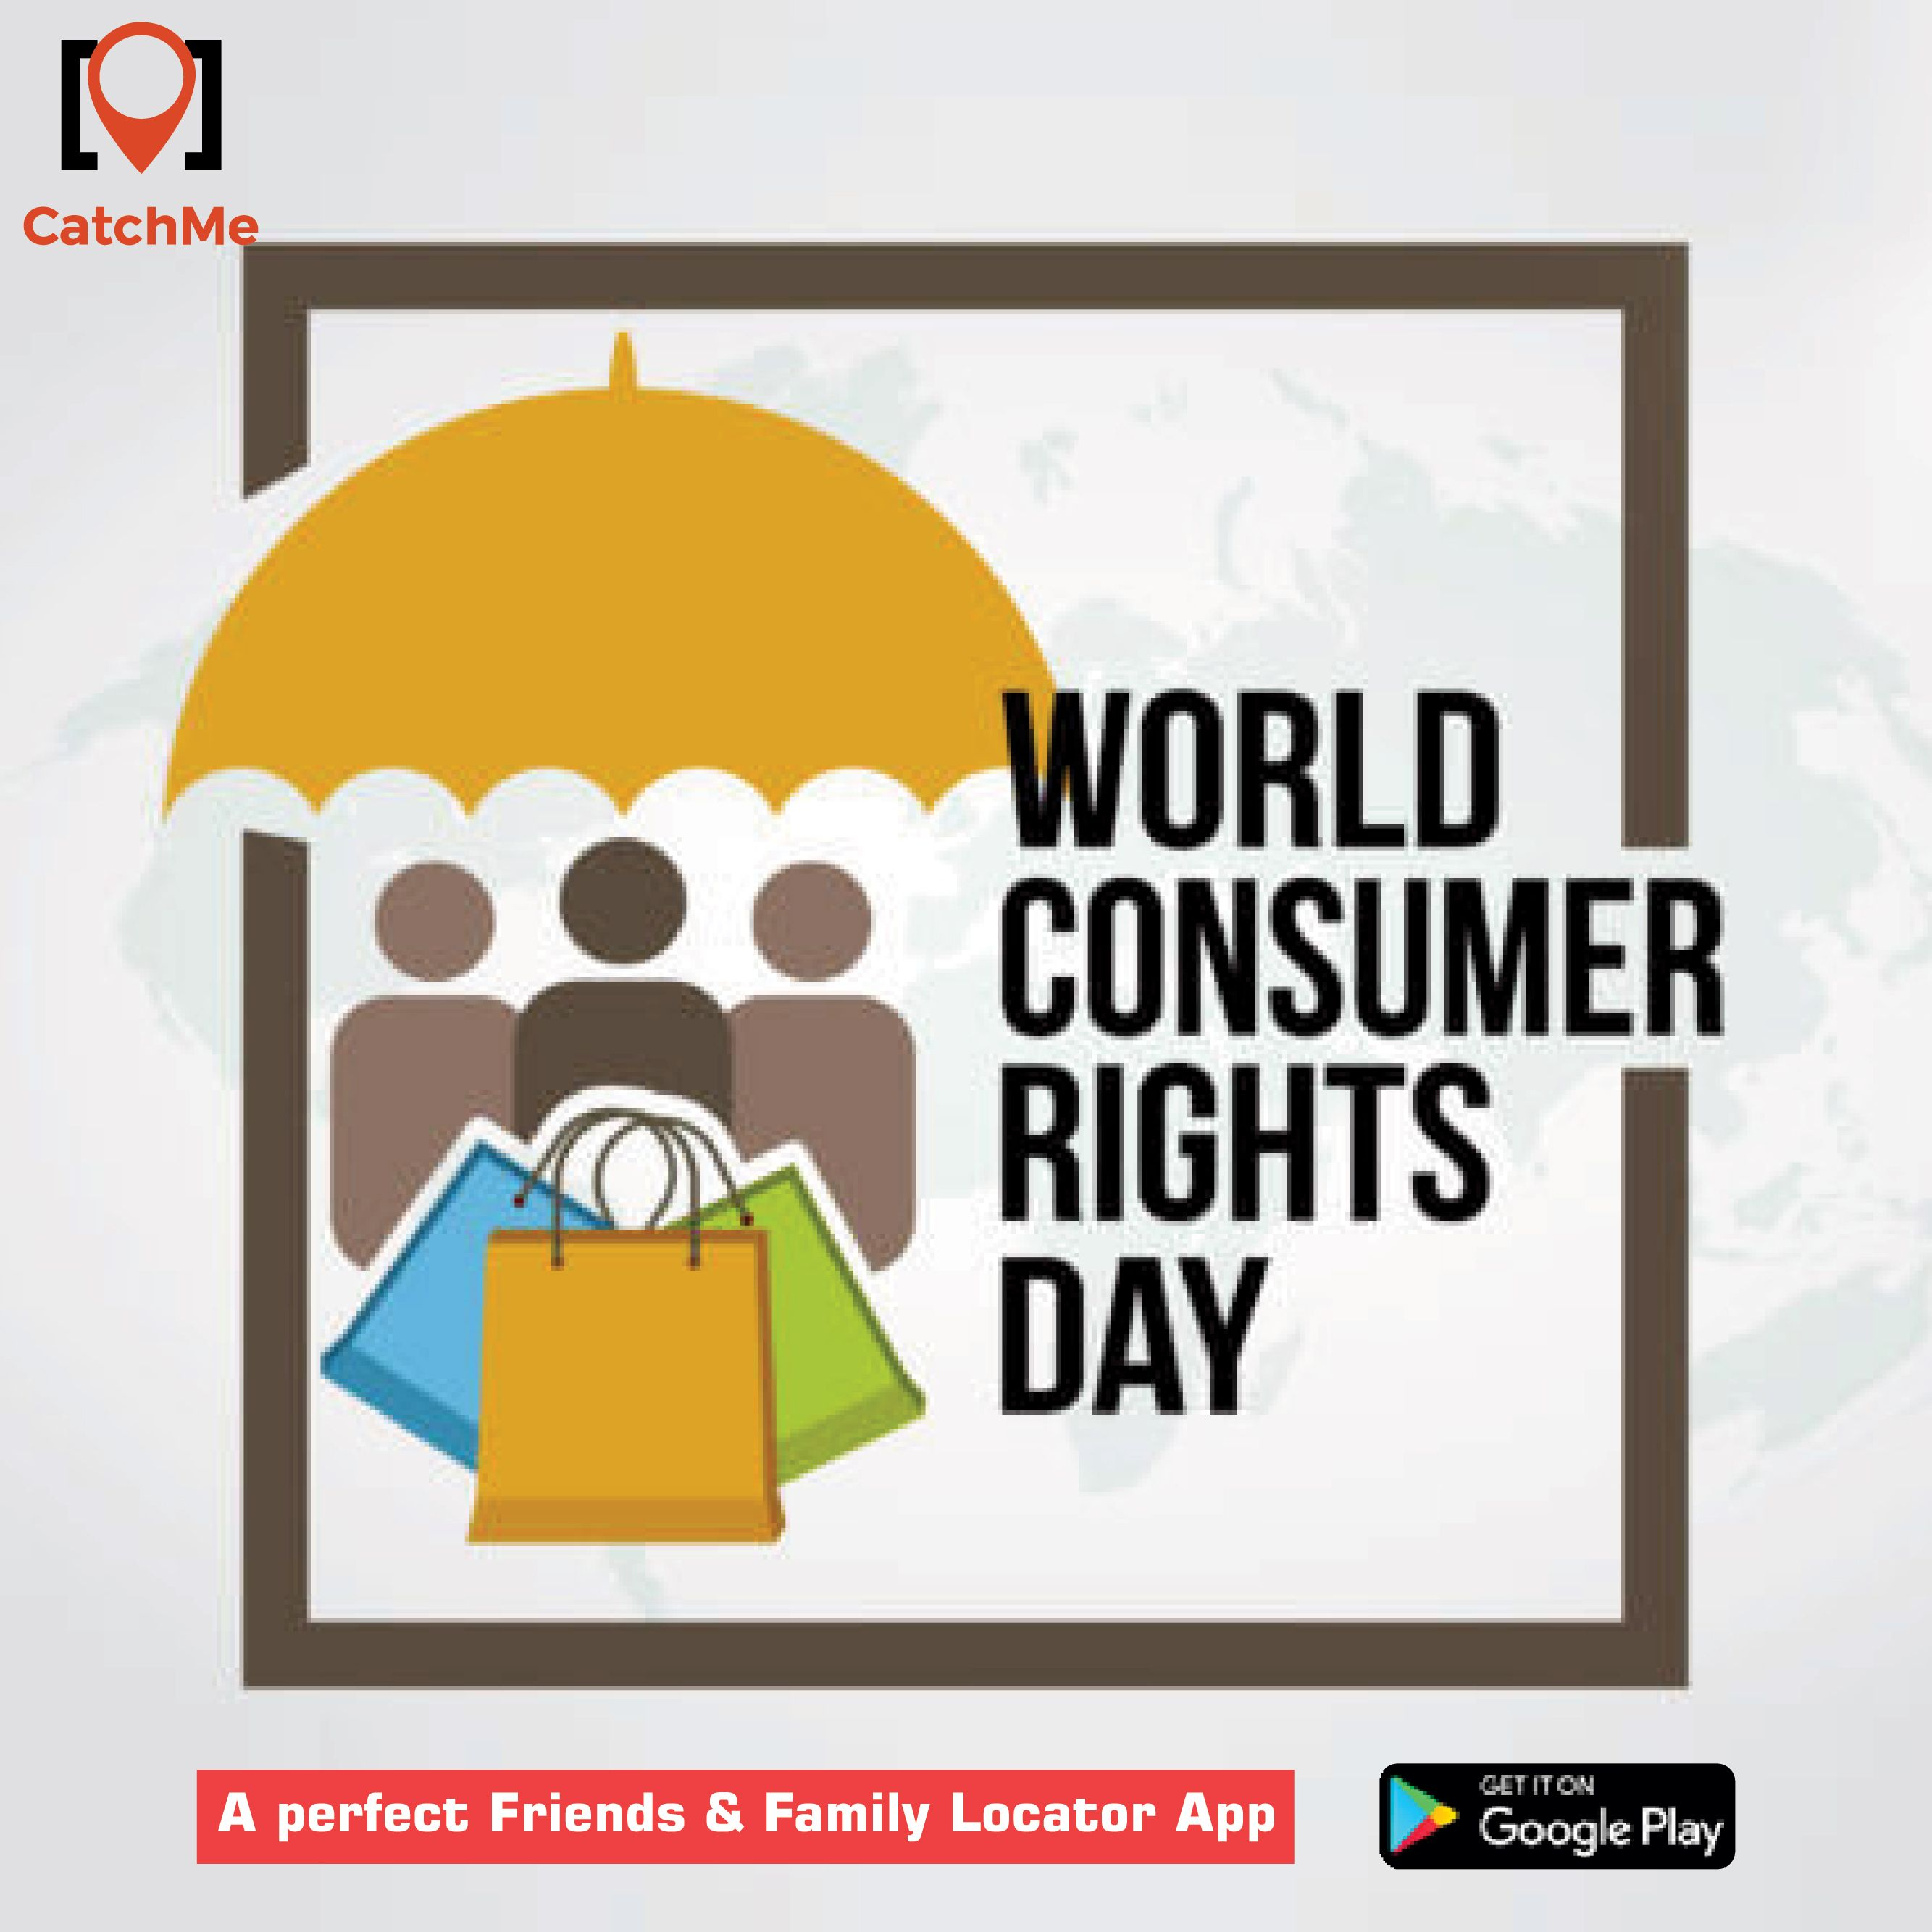 Greetings from CatchMe on WorldConsumerRightsDay. Let's